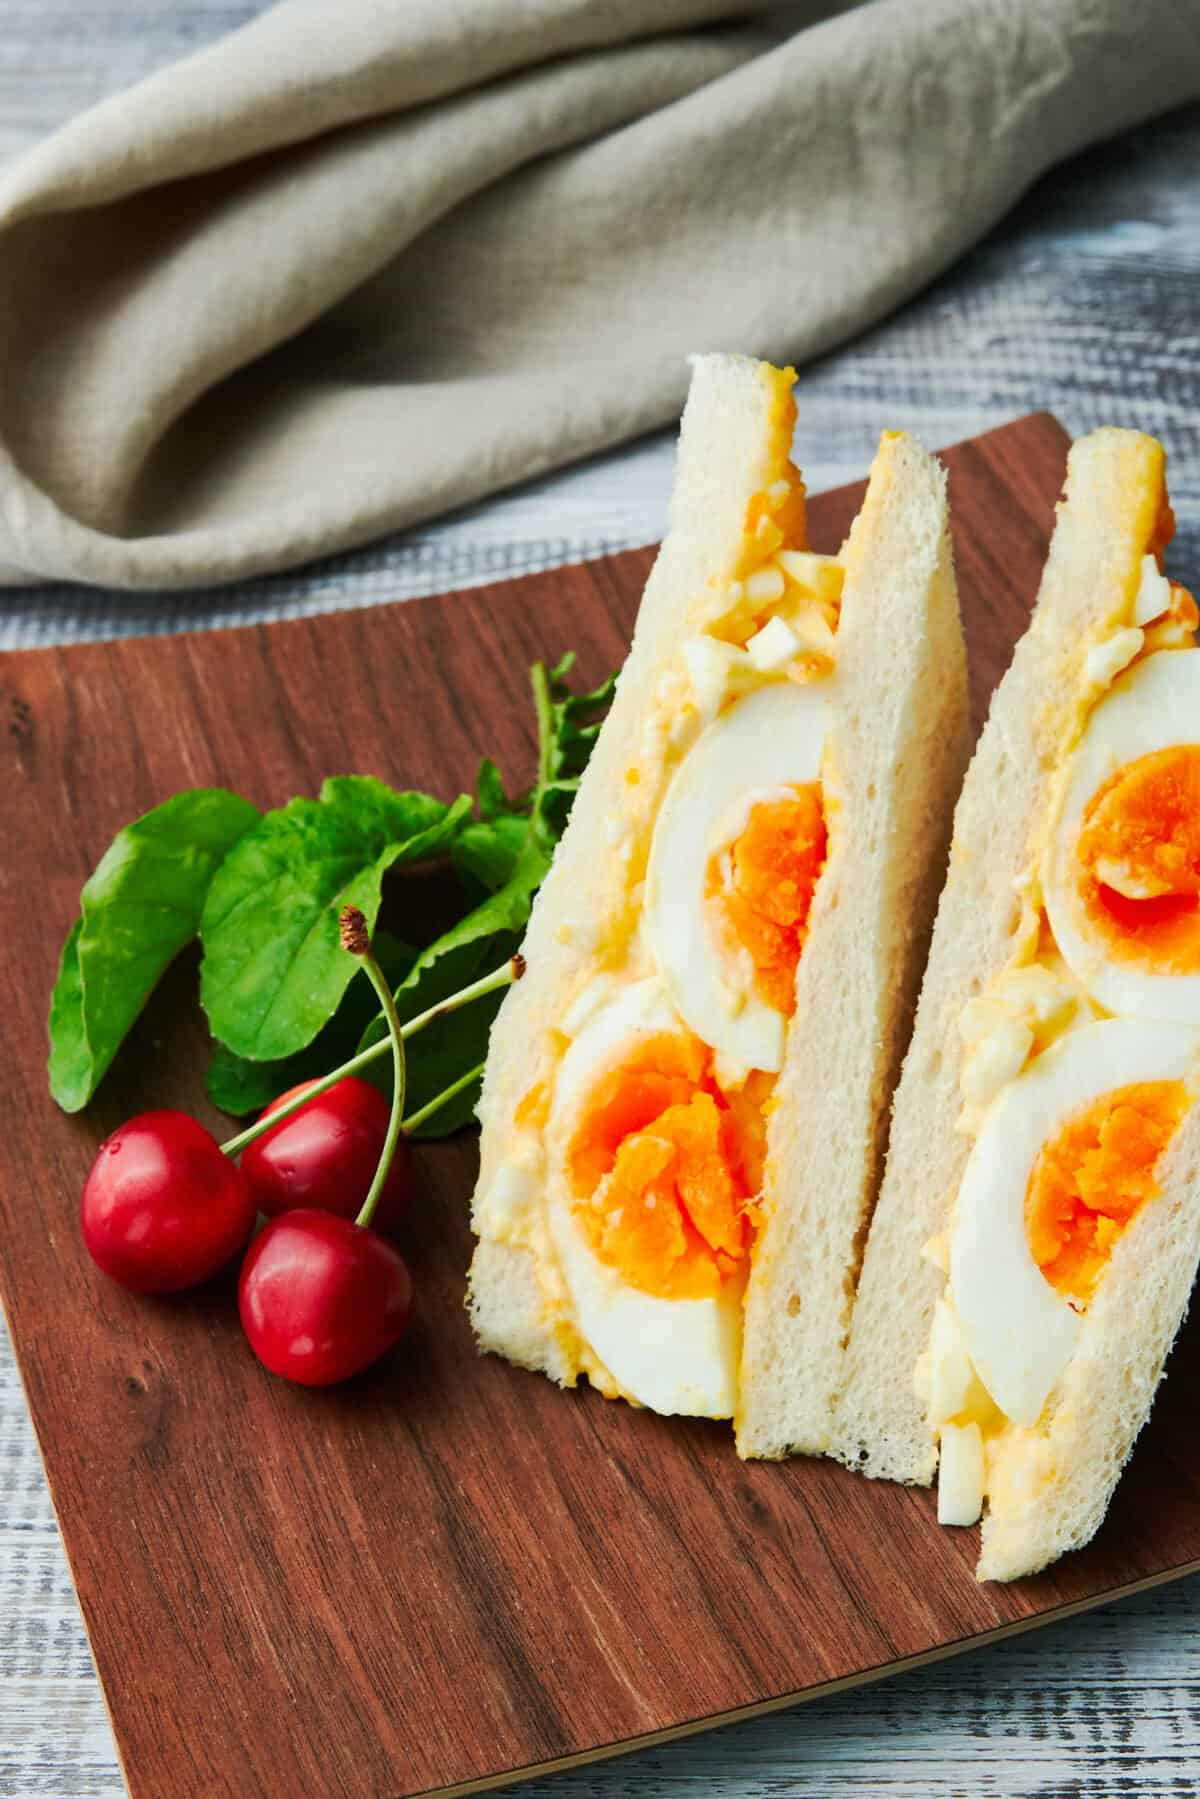 This protein packed Japanese egg salad sandwich recipe has a triple dose of eggs, packed with medium boiled eggs, egg salad, and mayonnaise.